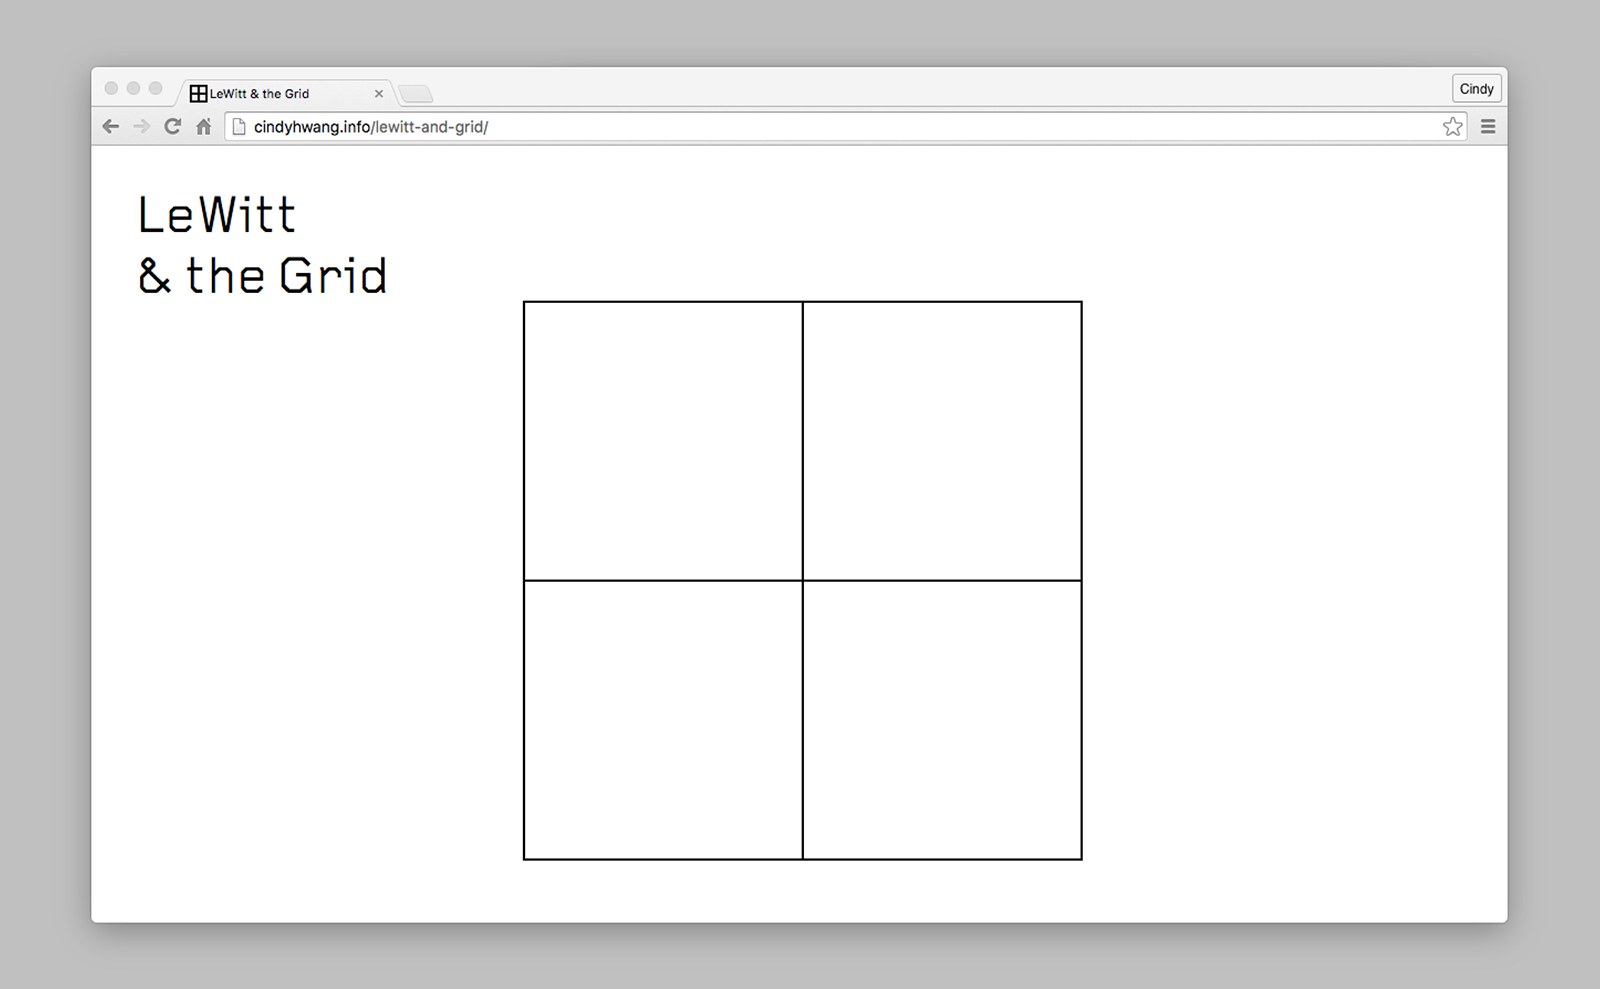 lewitt-and-grid-1